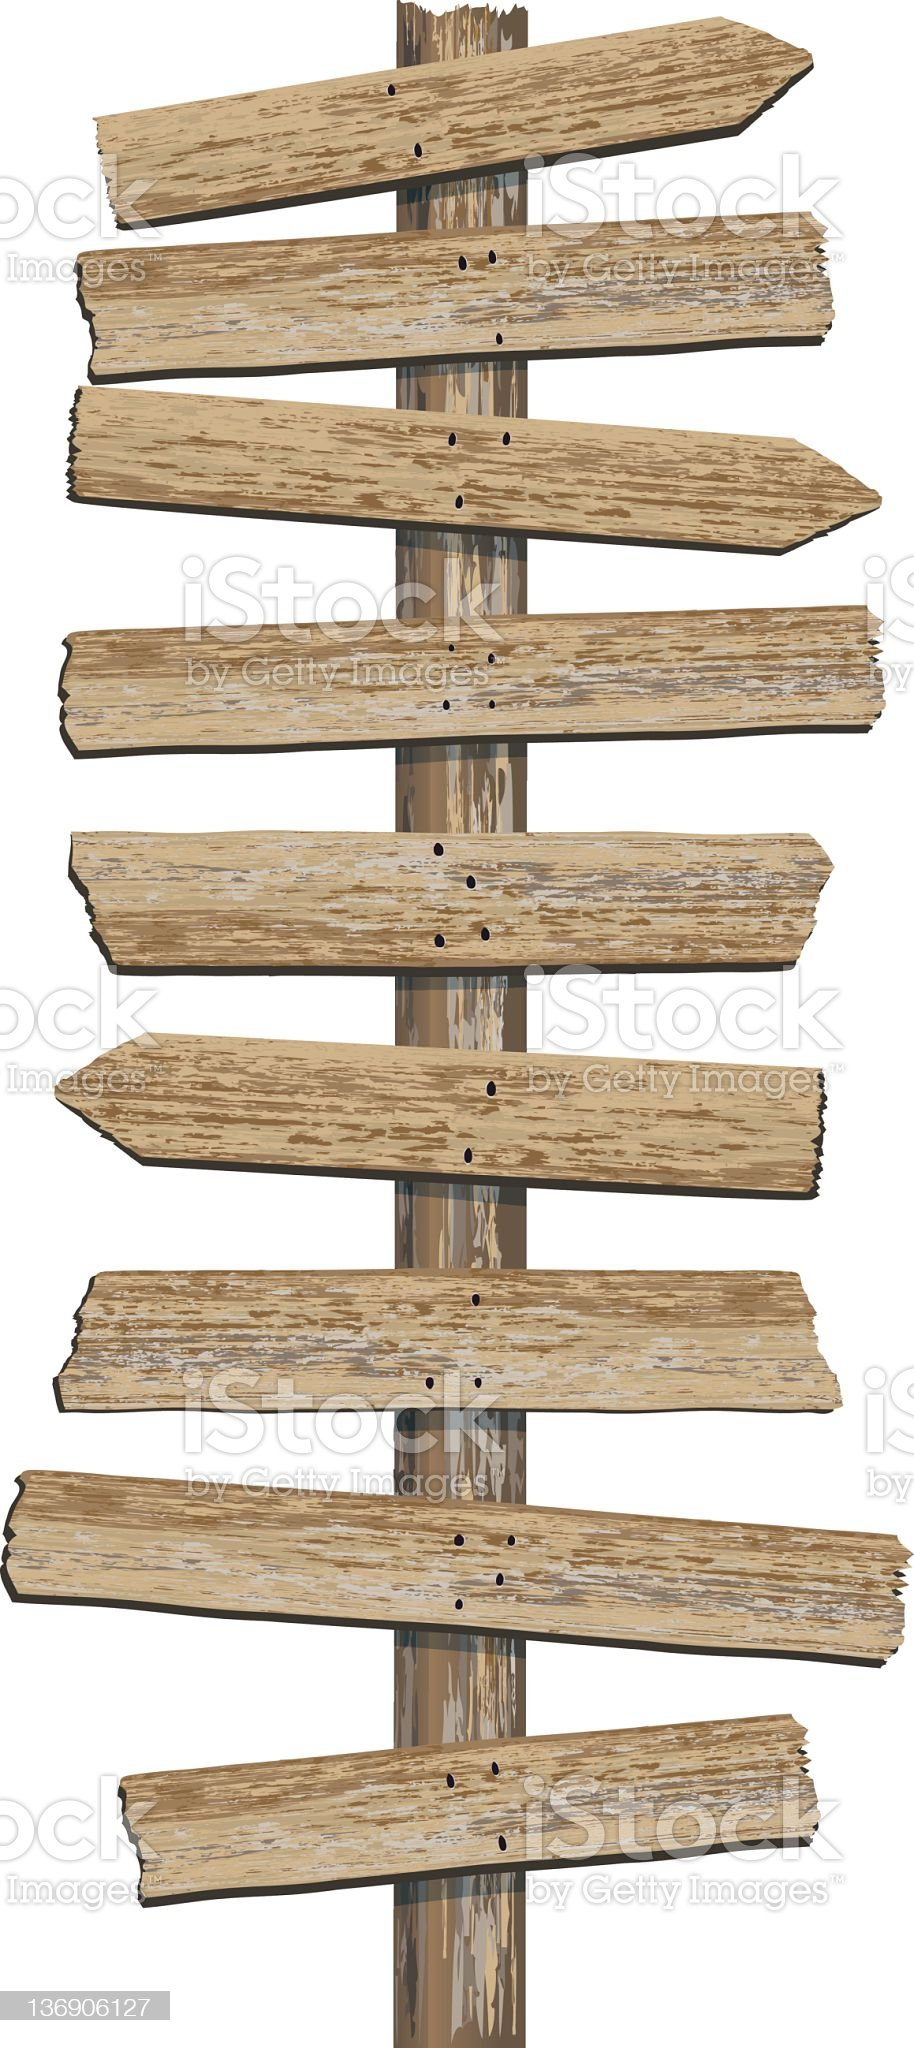 Old Grungy Woodgrain Textured Directional Sign with multiple planks royalty-free stock photo